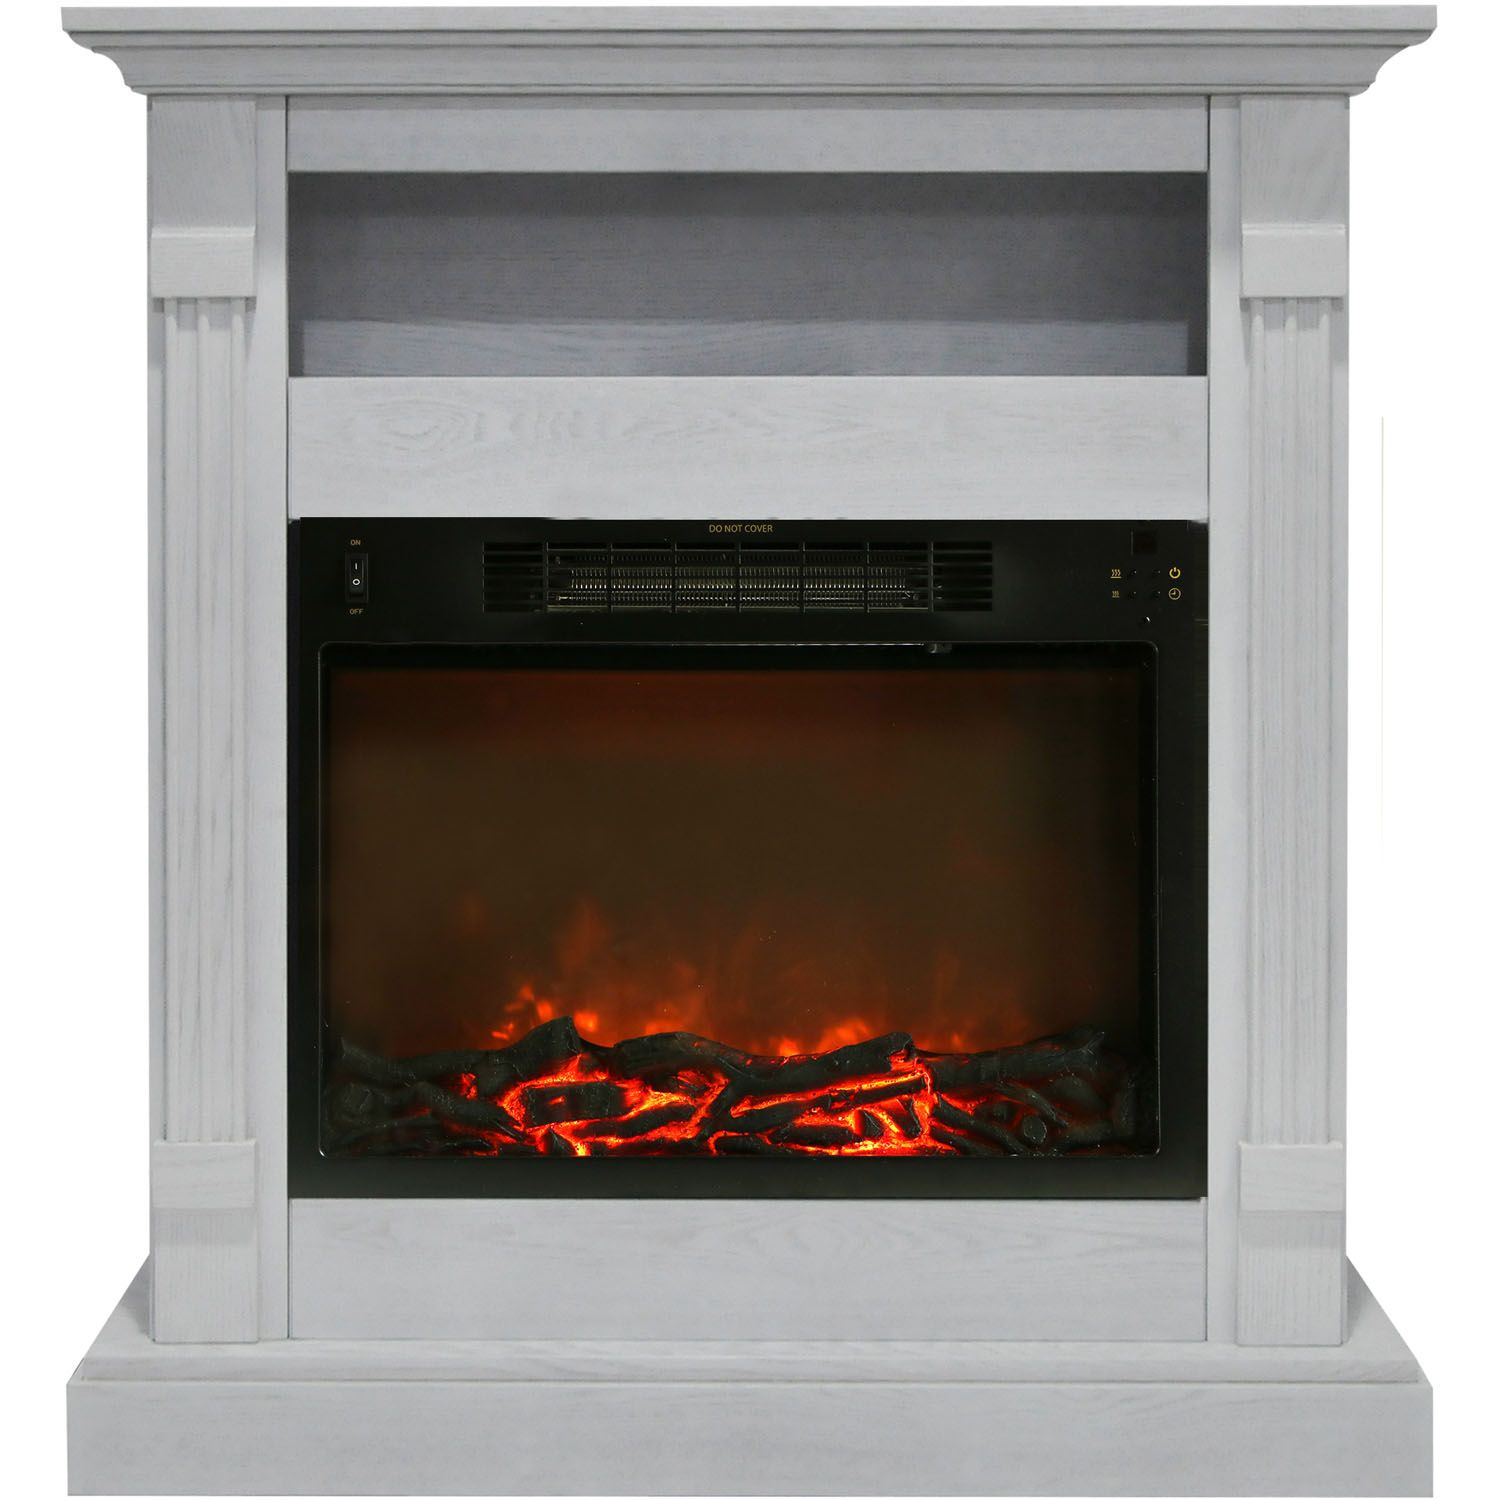 Cambridge Fireplaces New Cambridge Sienna Fireplace Mantel with Electronic Fireplace